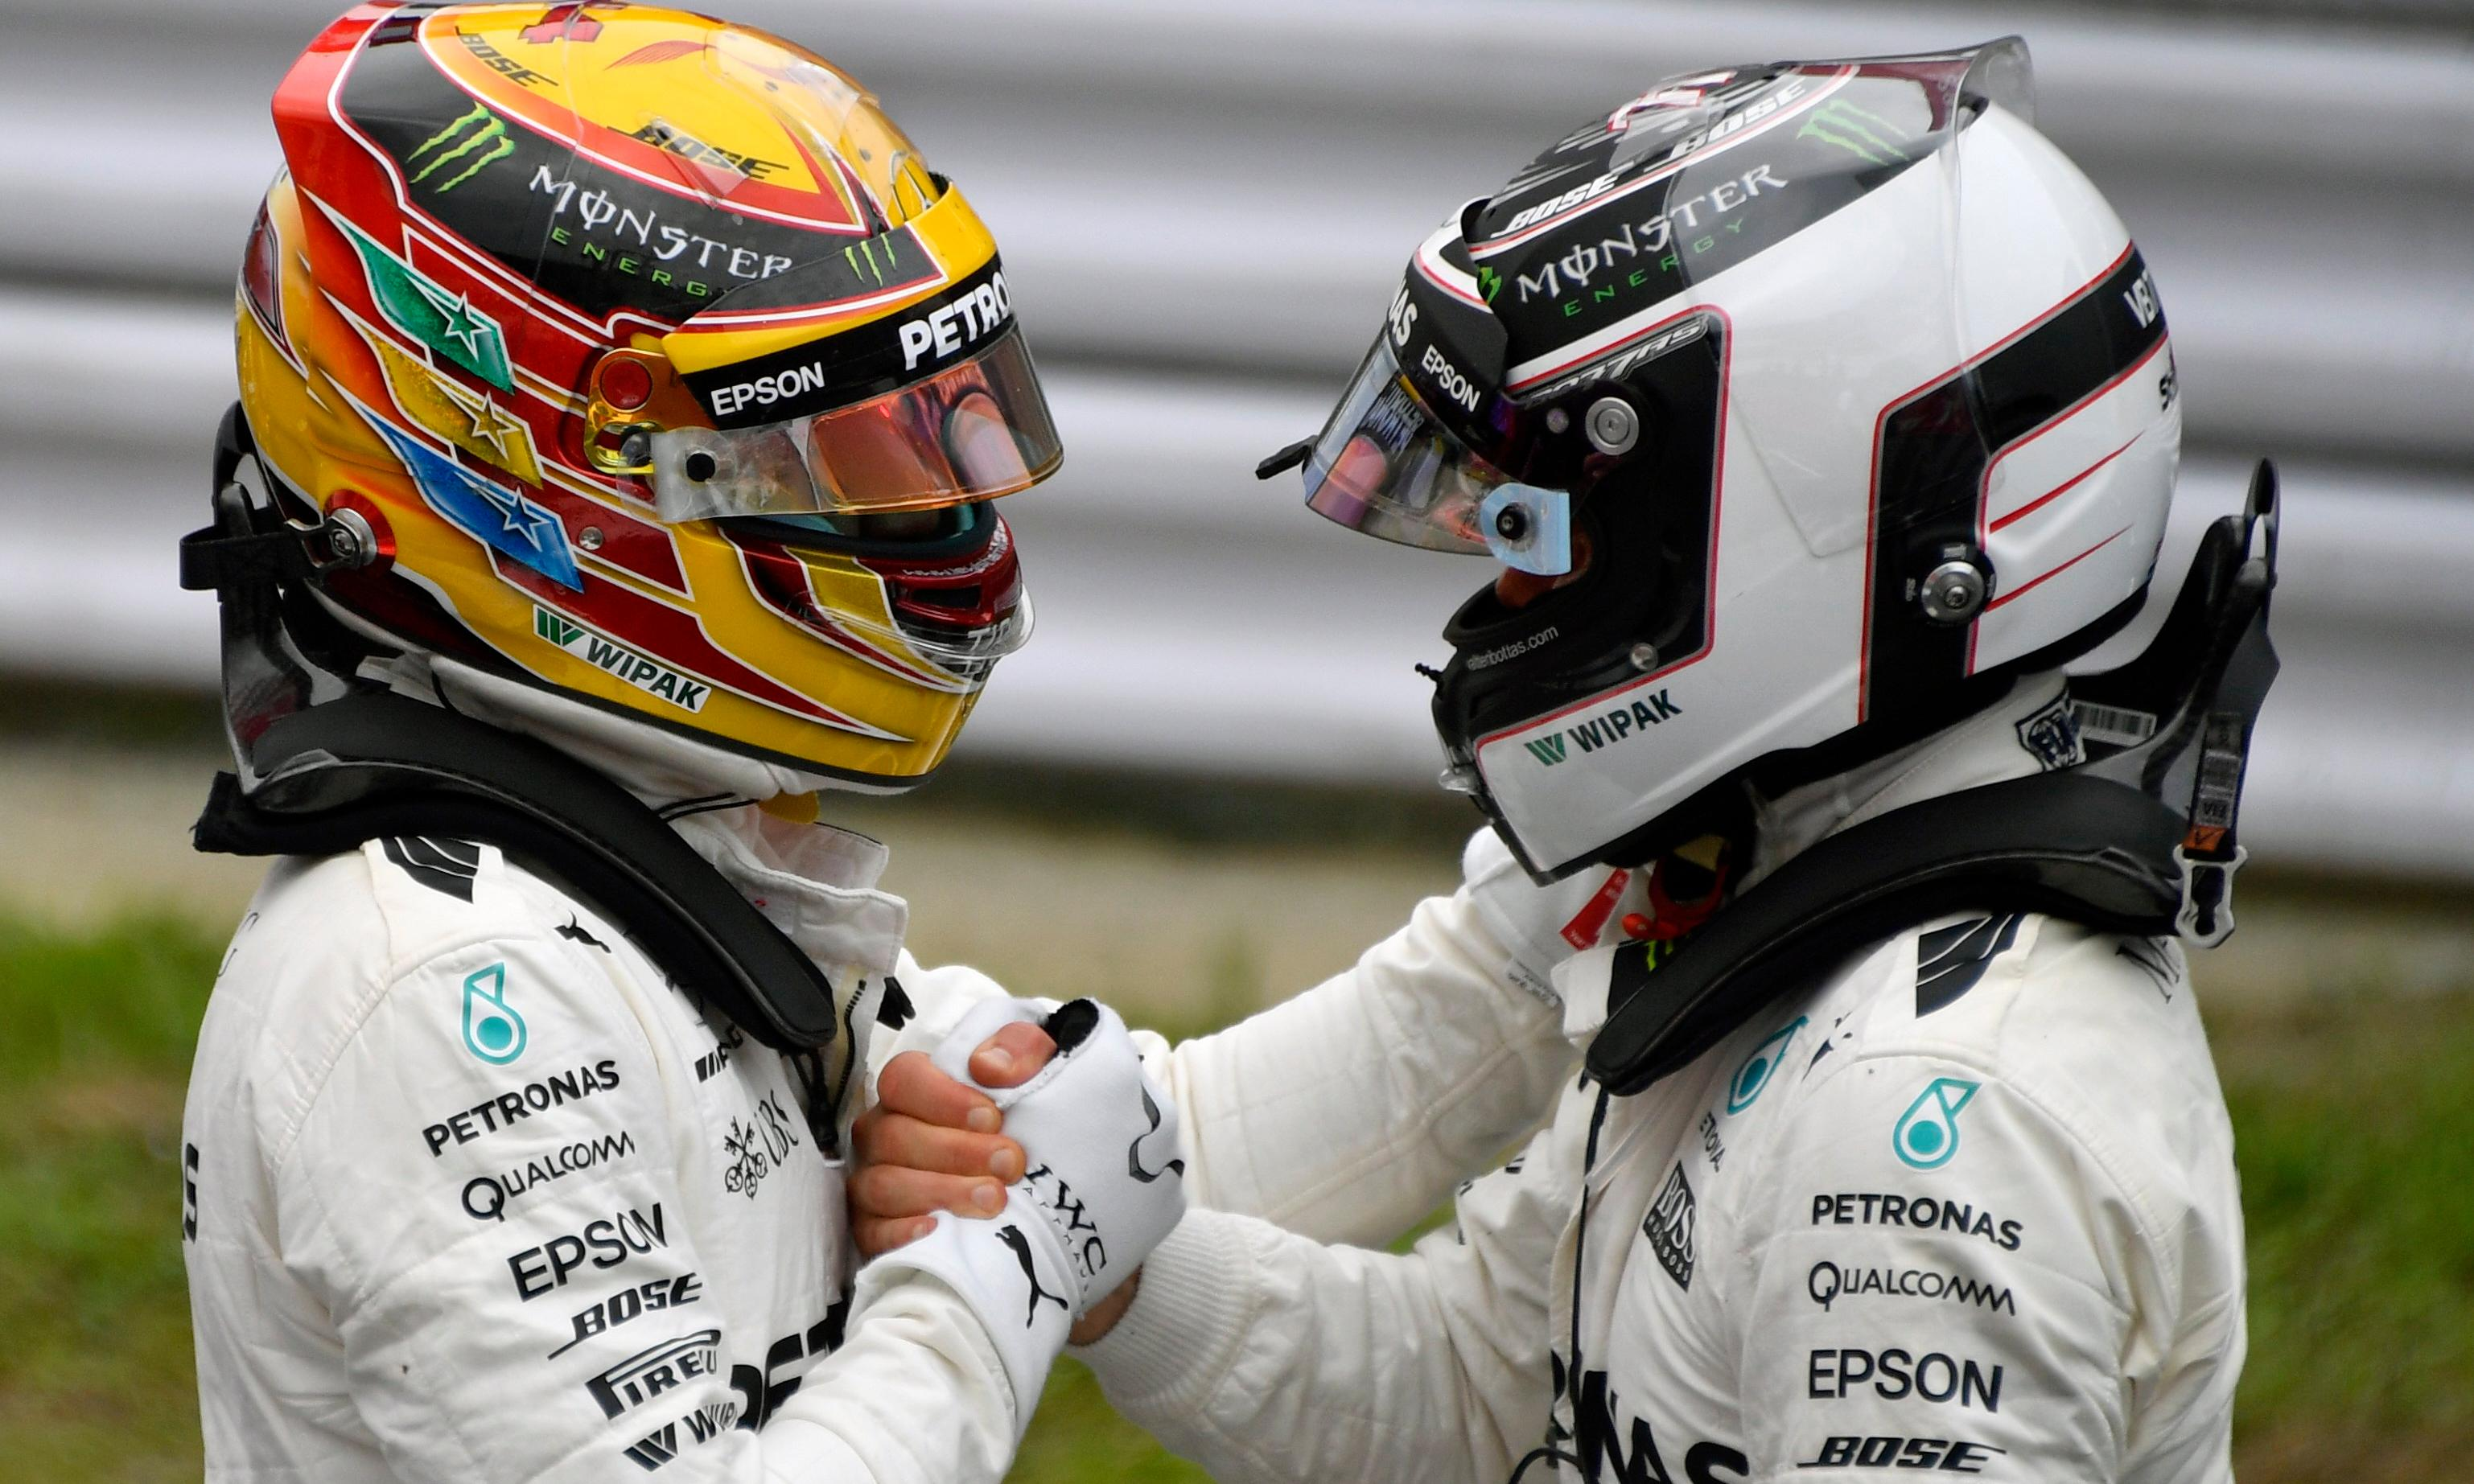 Mercedes' F1 achievements are every bit as remarkable as Lewis Hamilton's